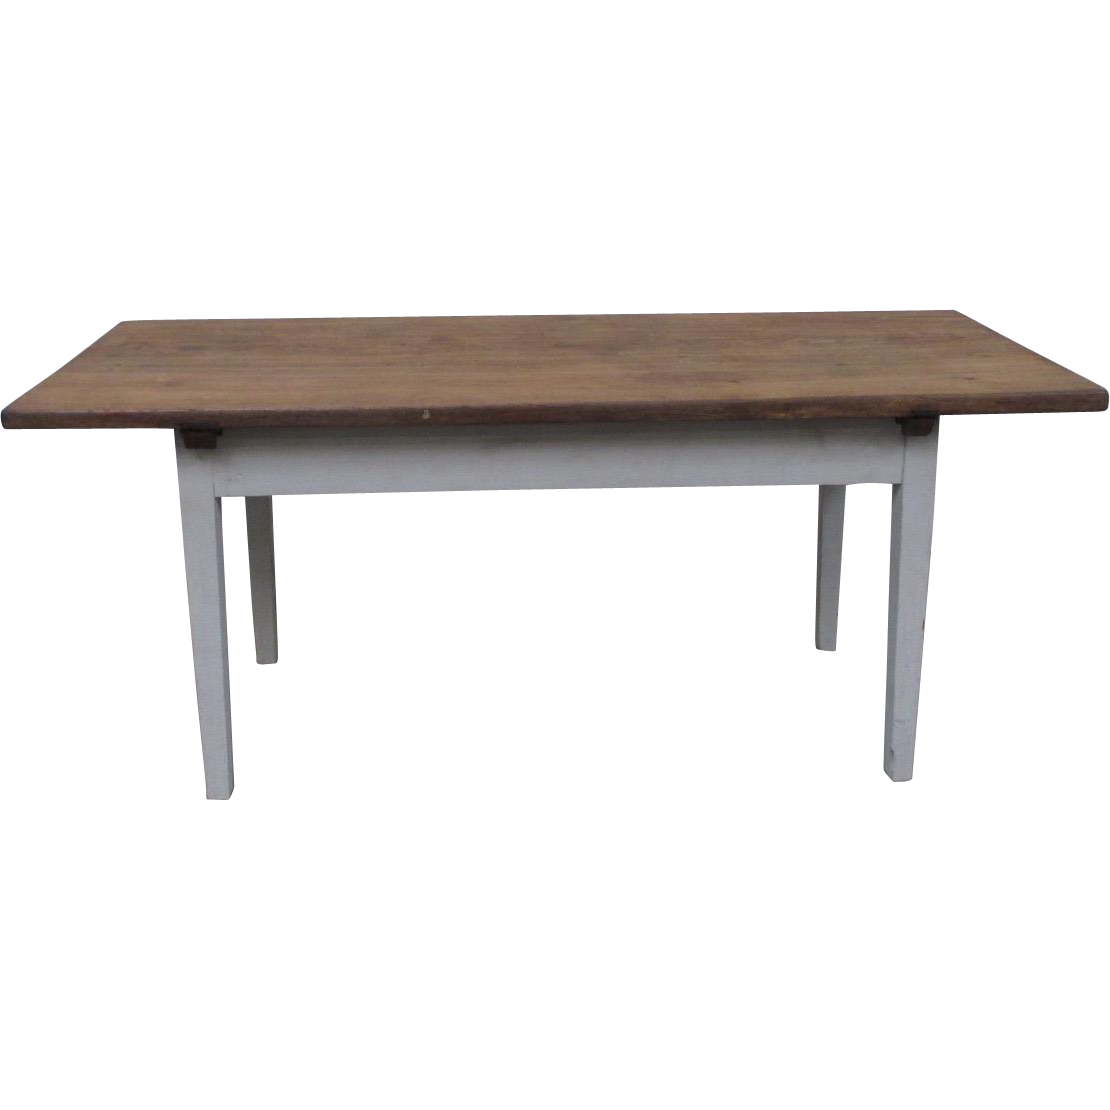 Danish Antique Rustic Painted Dining Table Farm Table